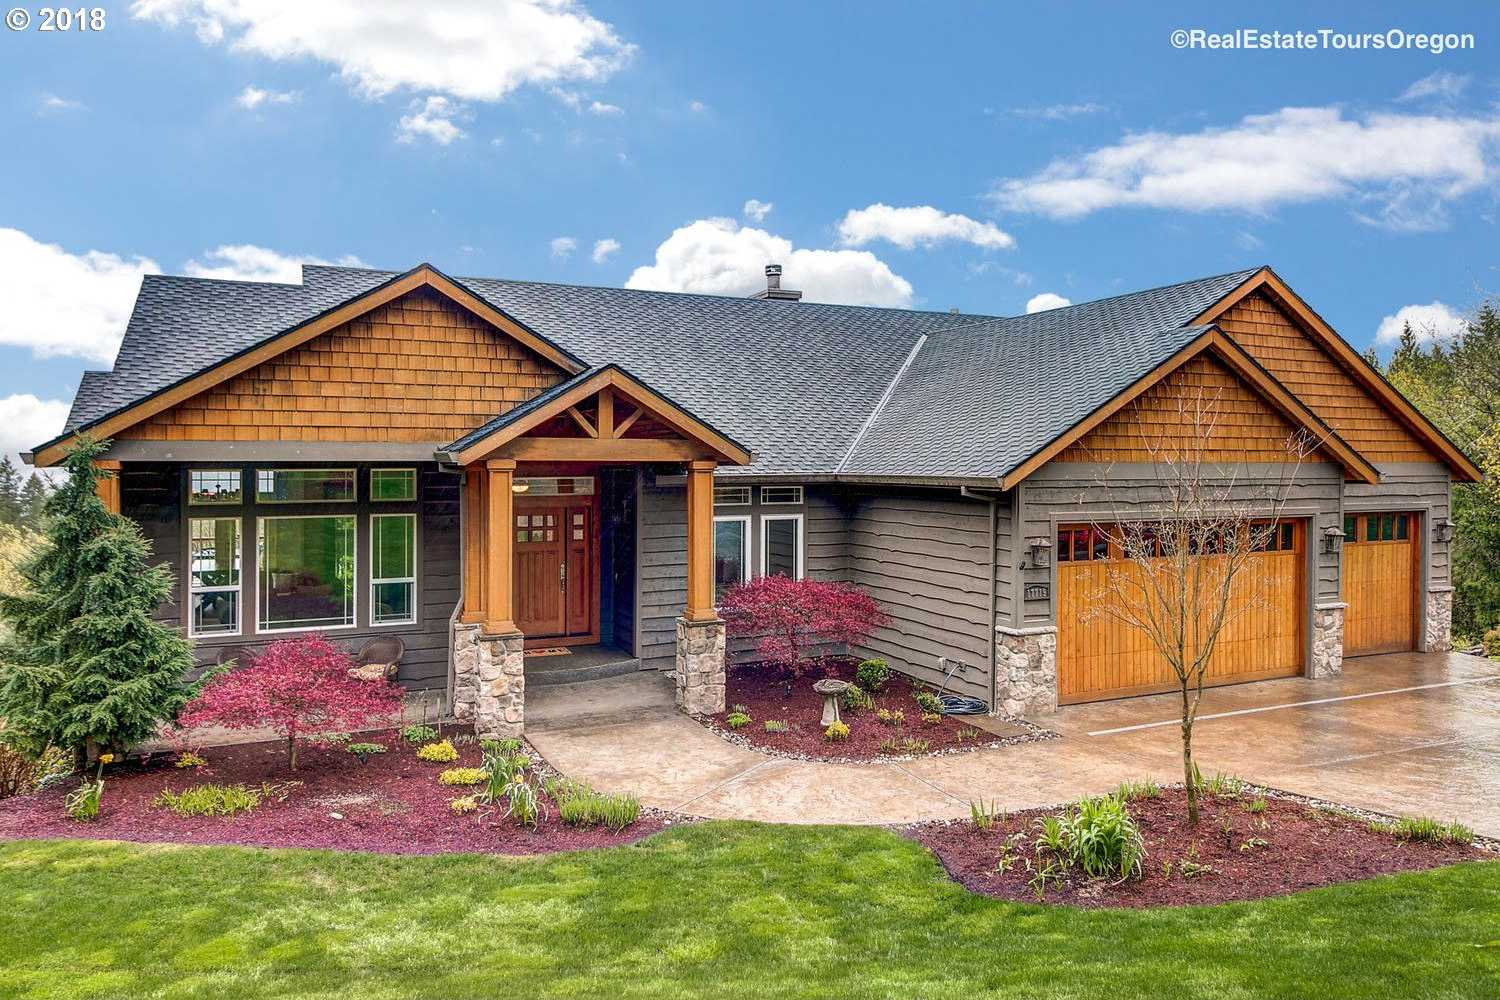 $1,300,000 - 4Br/4Ba -  for Sale in Parrett Mountain View Estates, Sherwood